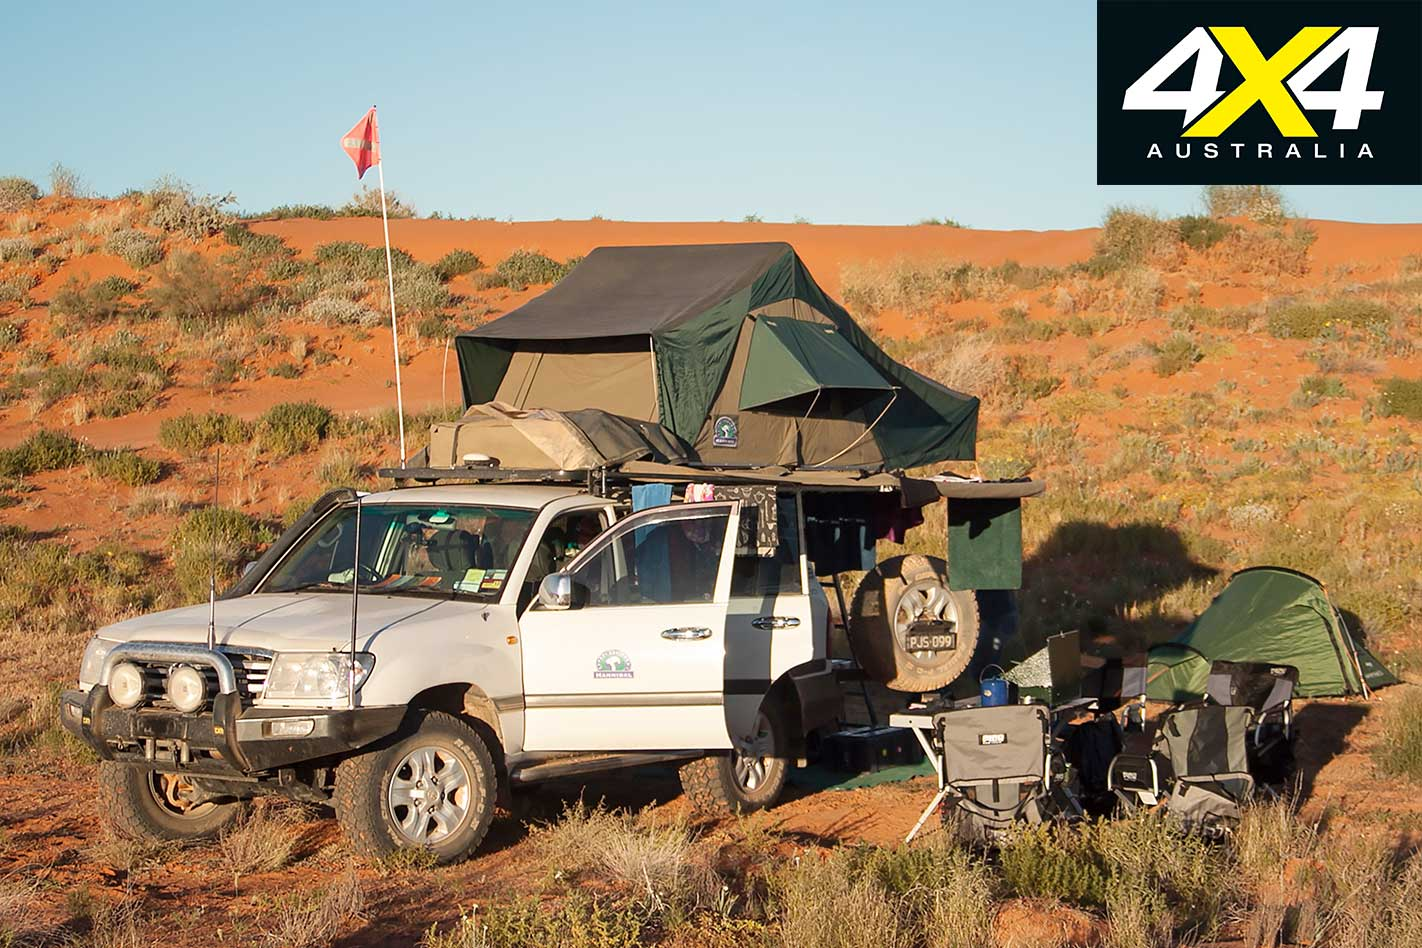 u201cThere is no authority in this country that will assess the specification of the tent. For ex&le the Hannibal tent is 380GSM canvas; there are other tent ... & Rooftop Tent Buyersu0027 Guide | 4X4 Australia